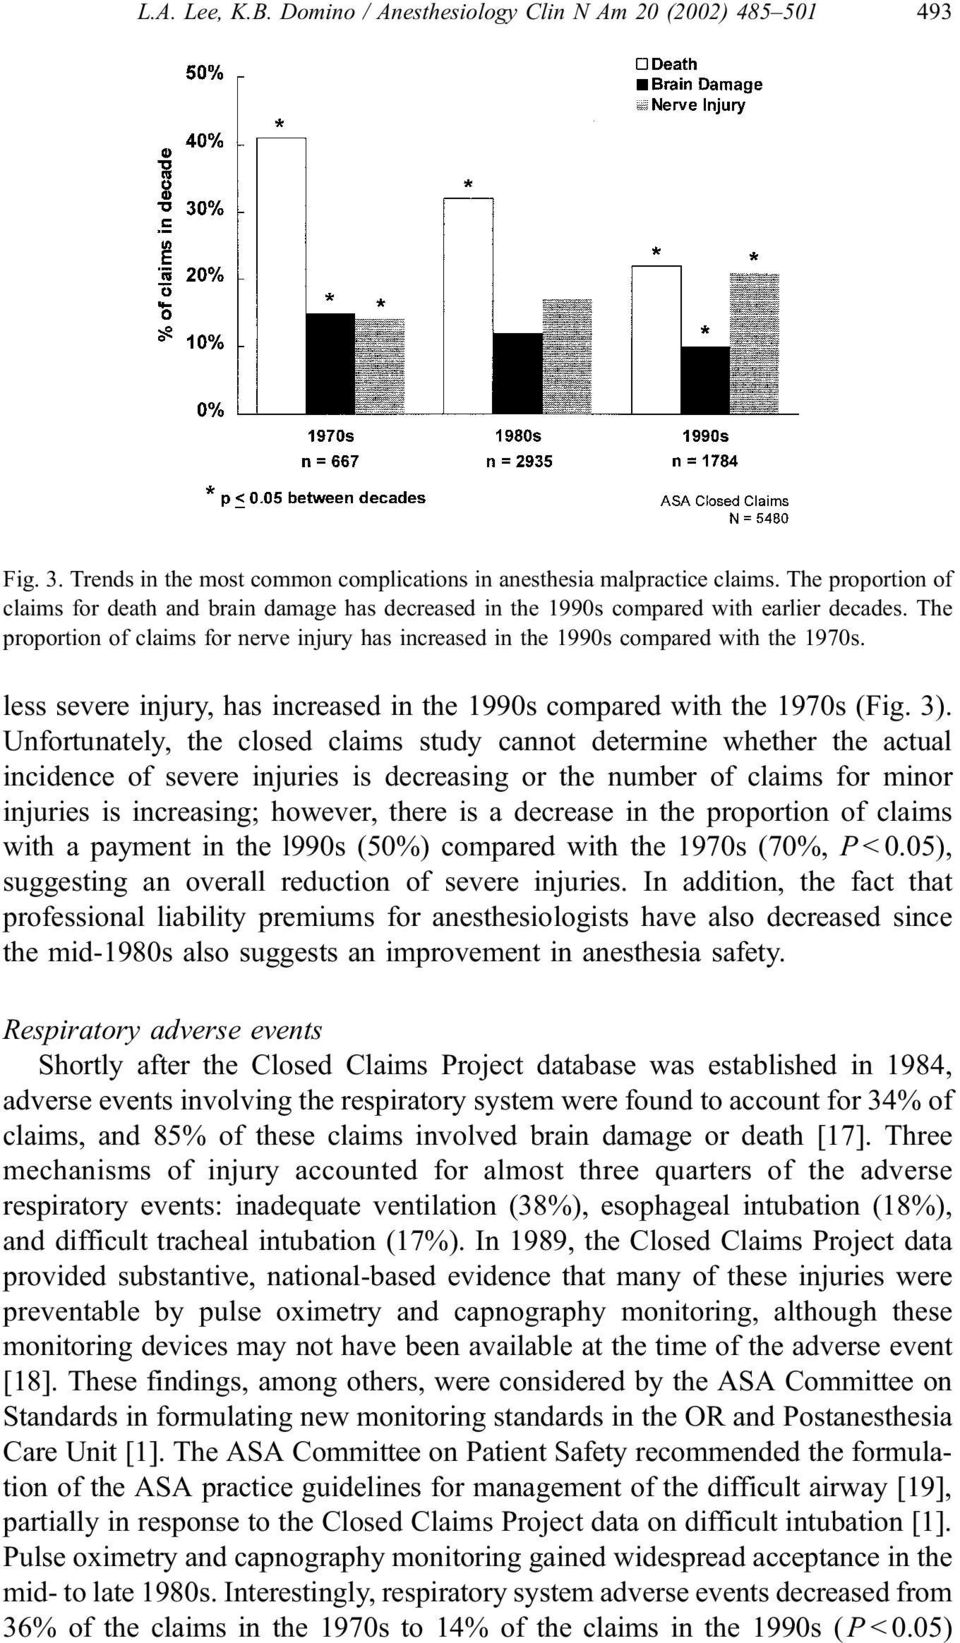 The proportion of claims for nerve injury has increased in the 1990s compared with the 1970s. less severe injury, has increased in the 1990s compared with the 1970s (Fig. 3).